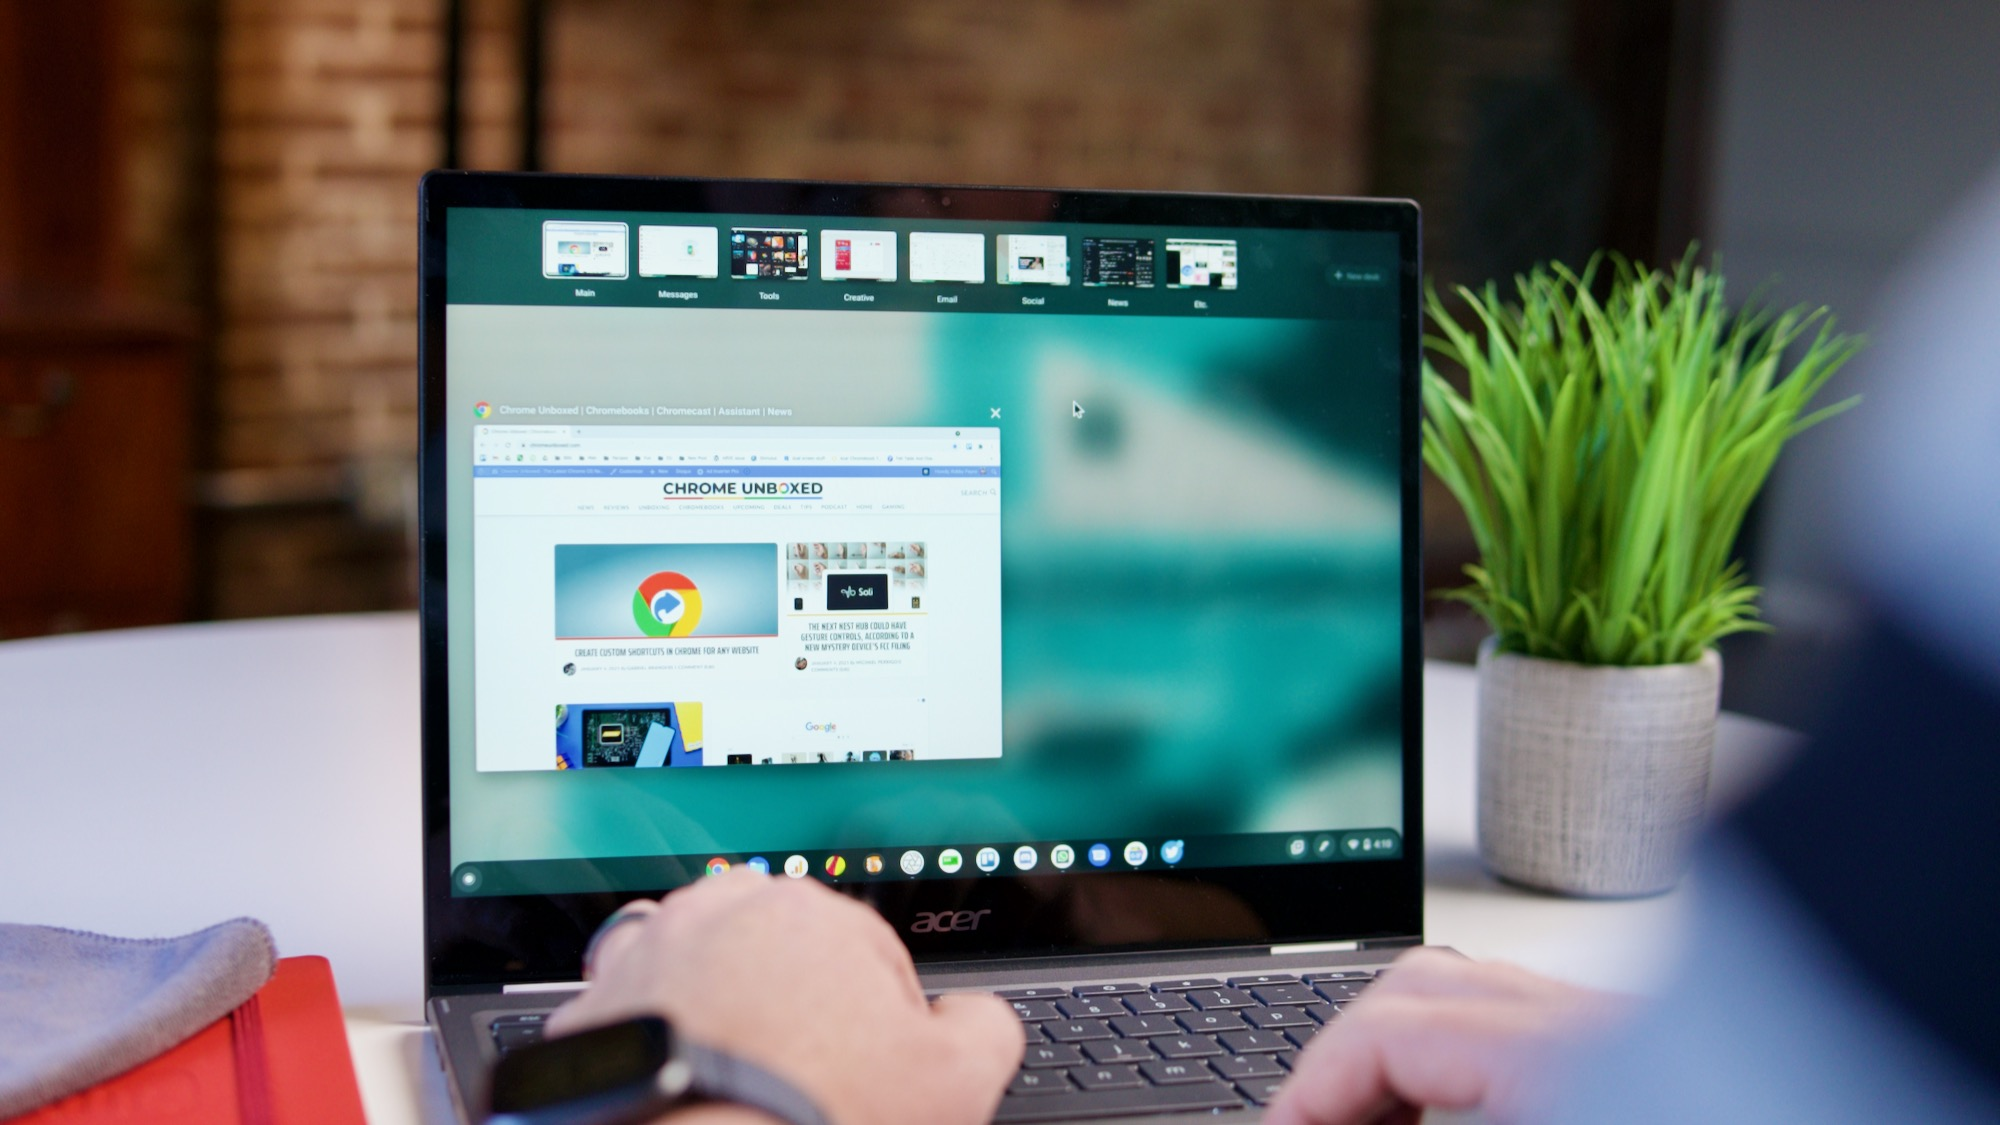 Here's how you can get the most out of your Chromebook's virtual desks